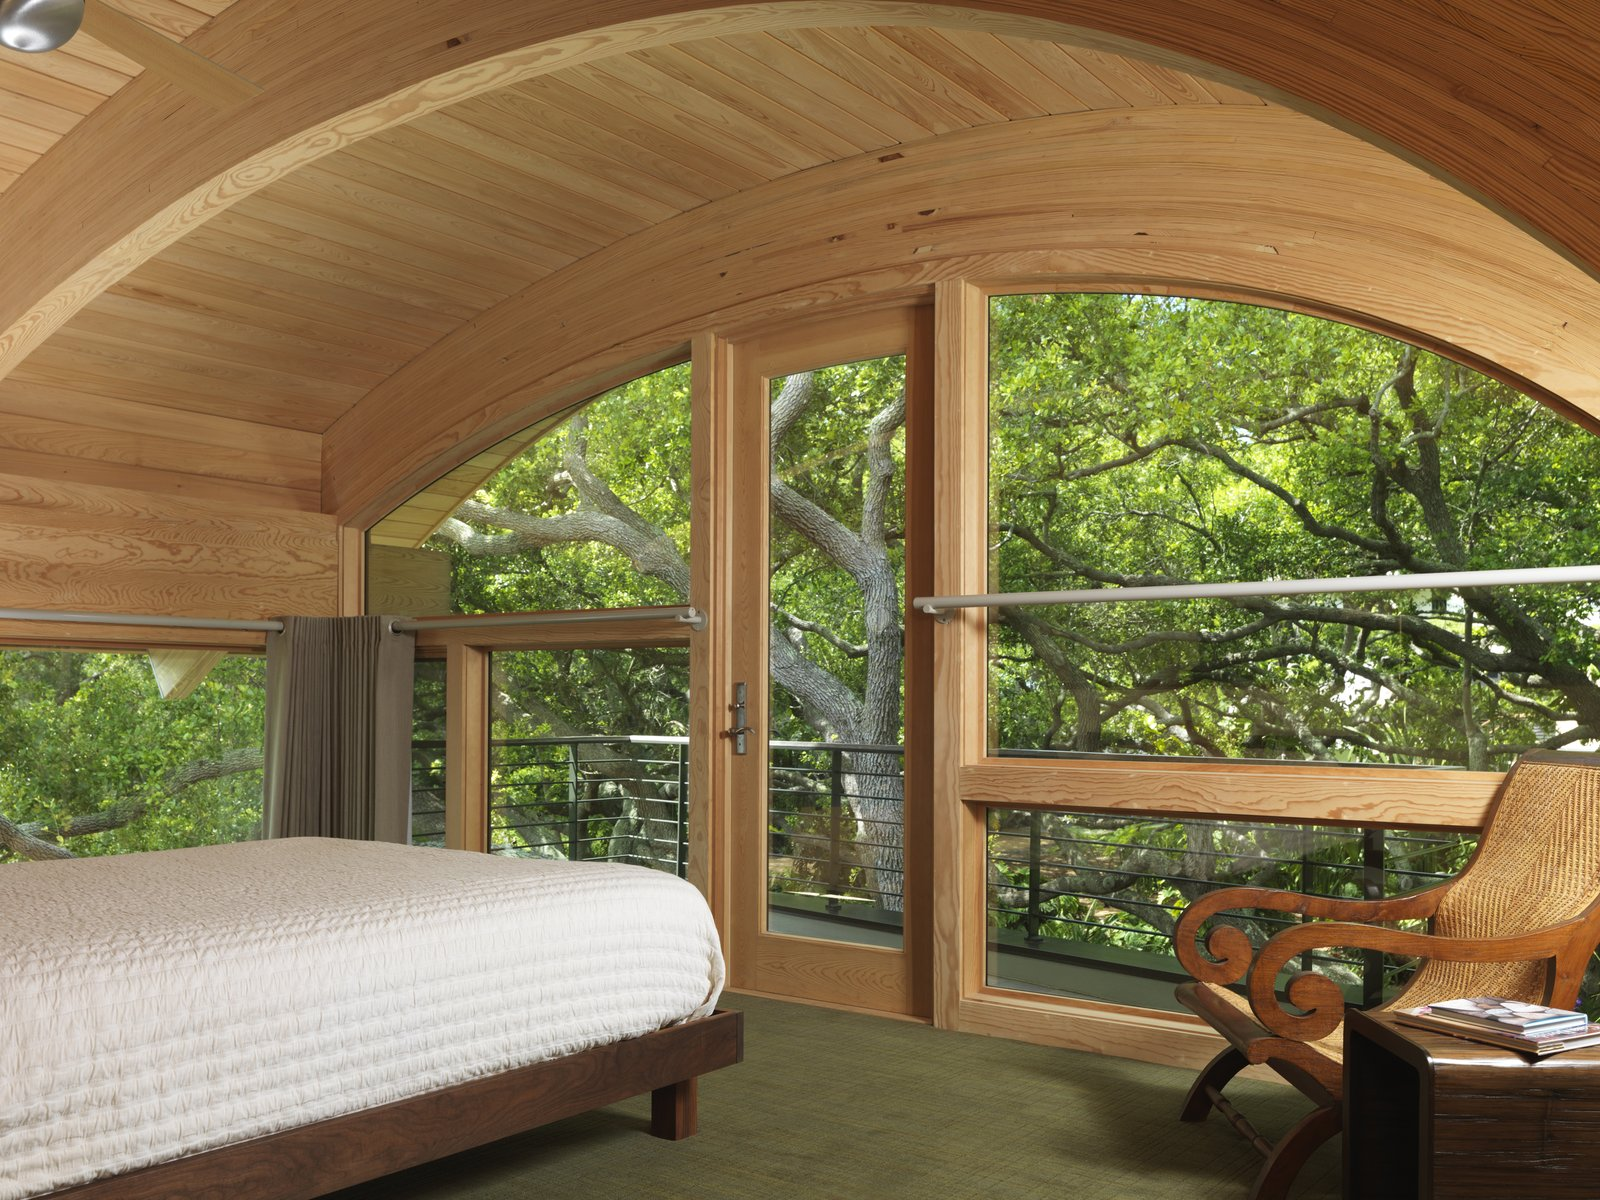 Casey Key House  In this playful treehouse-style bedroom, custom arched windows surround the room and meet the wooden ceiling. Elements of wood and modern architecture draw the sound of rustling leaves and midday breeze into this cozy treetop retreat.  Architect: Jerry Sparkman; Architecture Firm: Sweet Sparkman Architects; Location: Casey Key, FL   #marvin #windows #doors  #indoor #outdoor #transition #caseykeys #FL    Photo 18 of 25 in Photo Essay: Enchanting Tree Houses